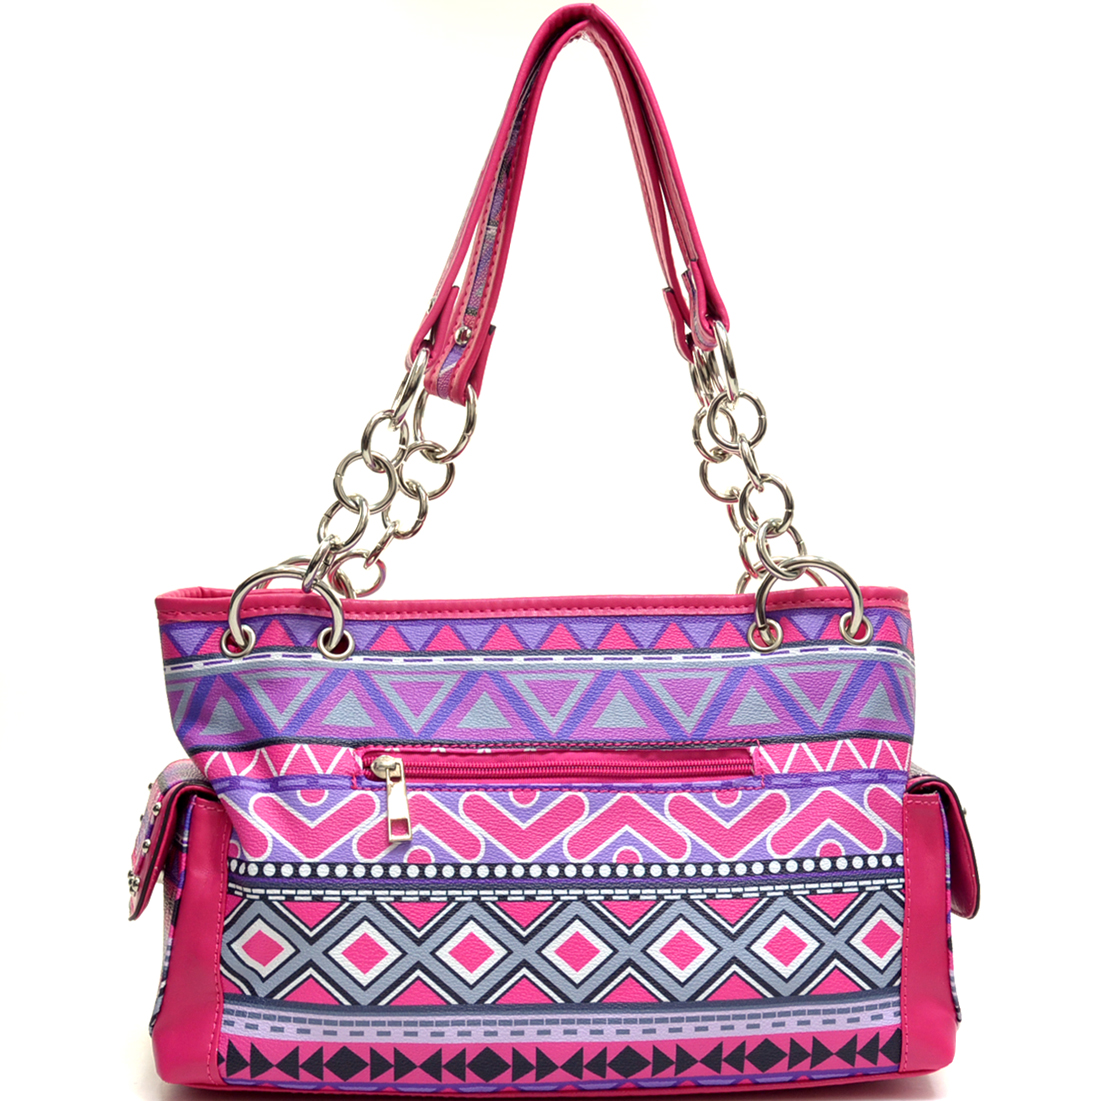 Aztec Print Shoulder Bag with Chain Handles & Silver Tone Stud Accents